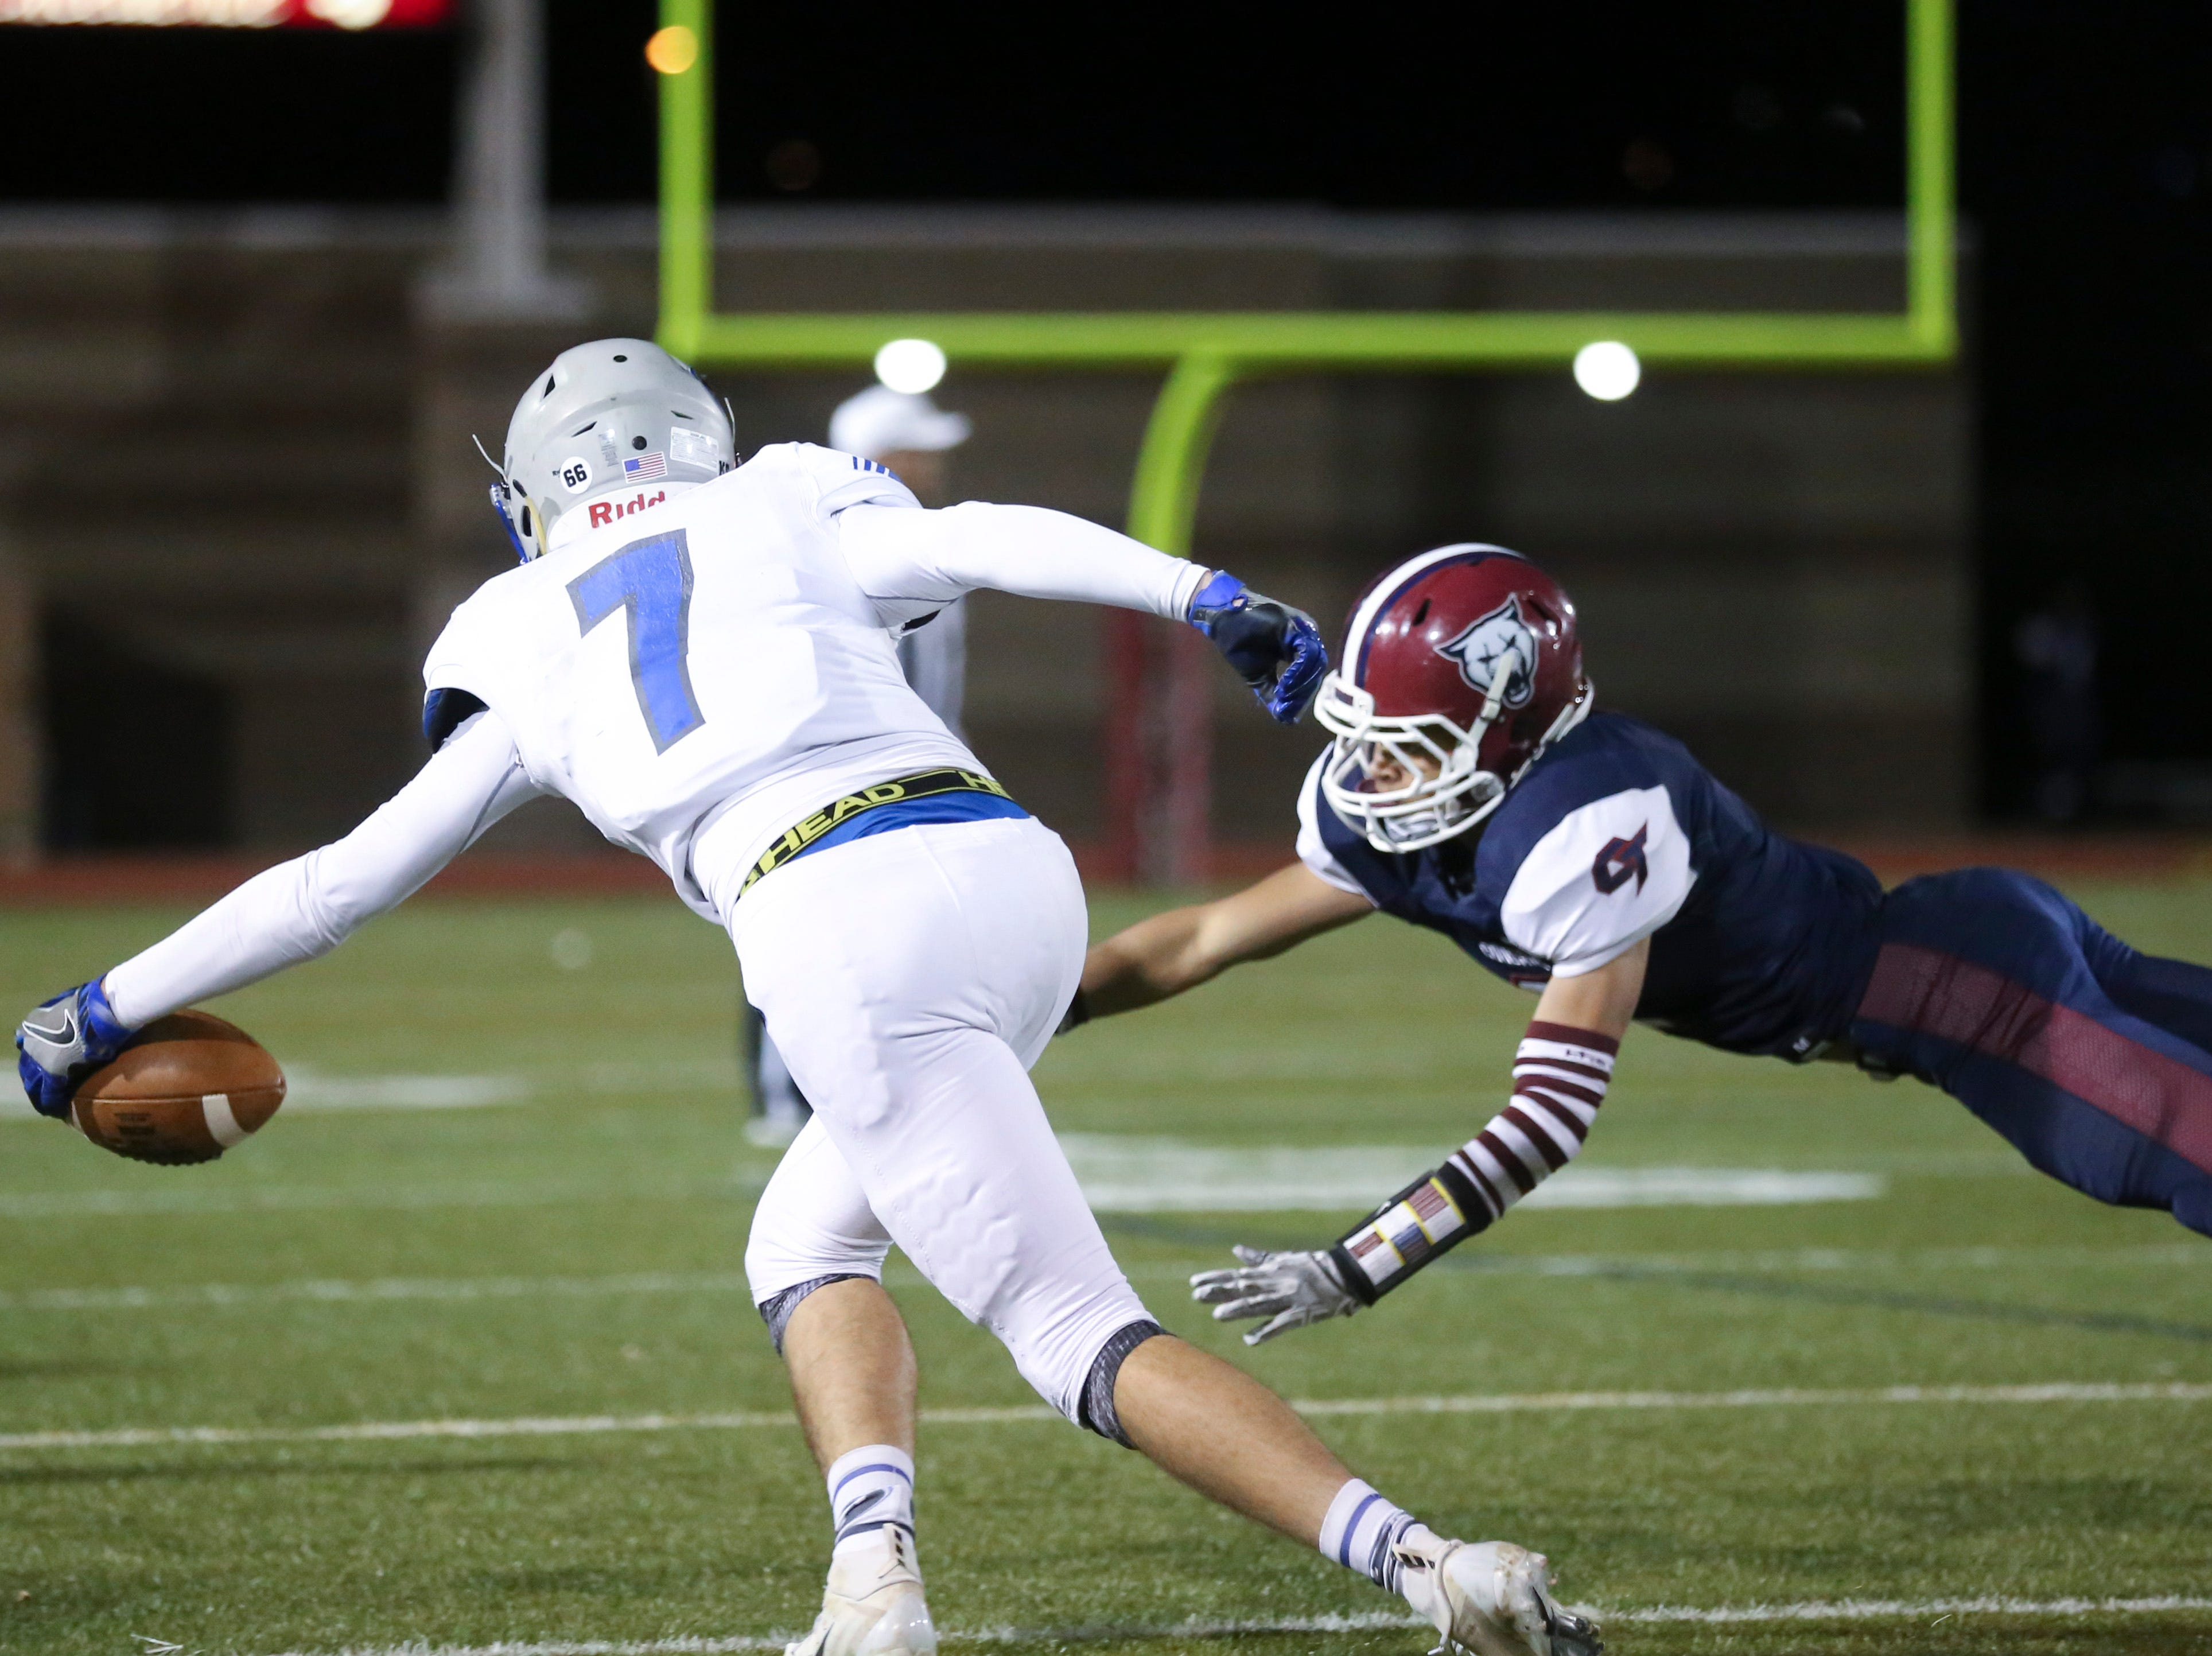 Poudre High School's Josiah Stribling stretches for the ball during the fourth quarter against Cherokee Trail High School on Friday evening.